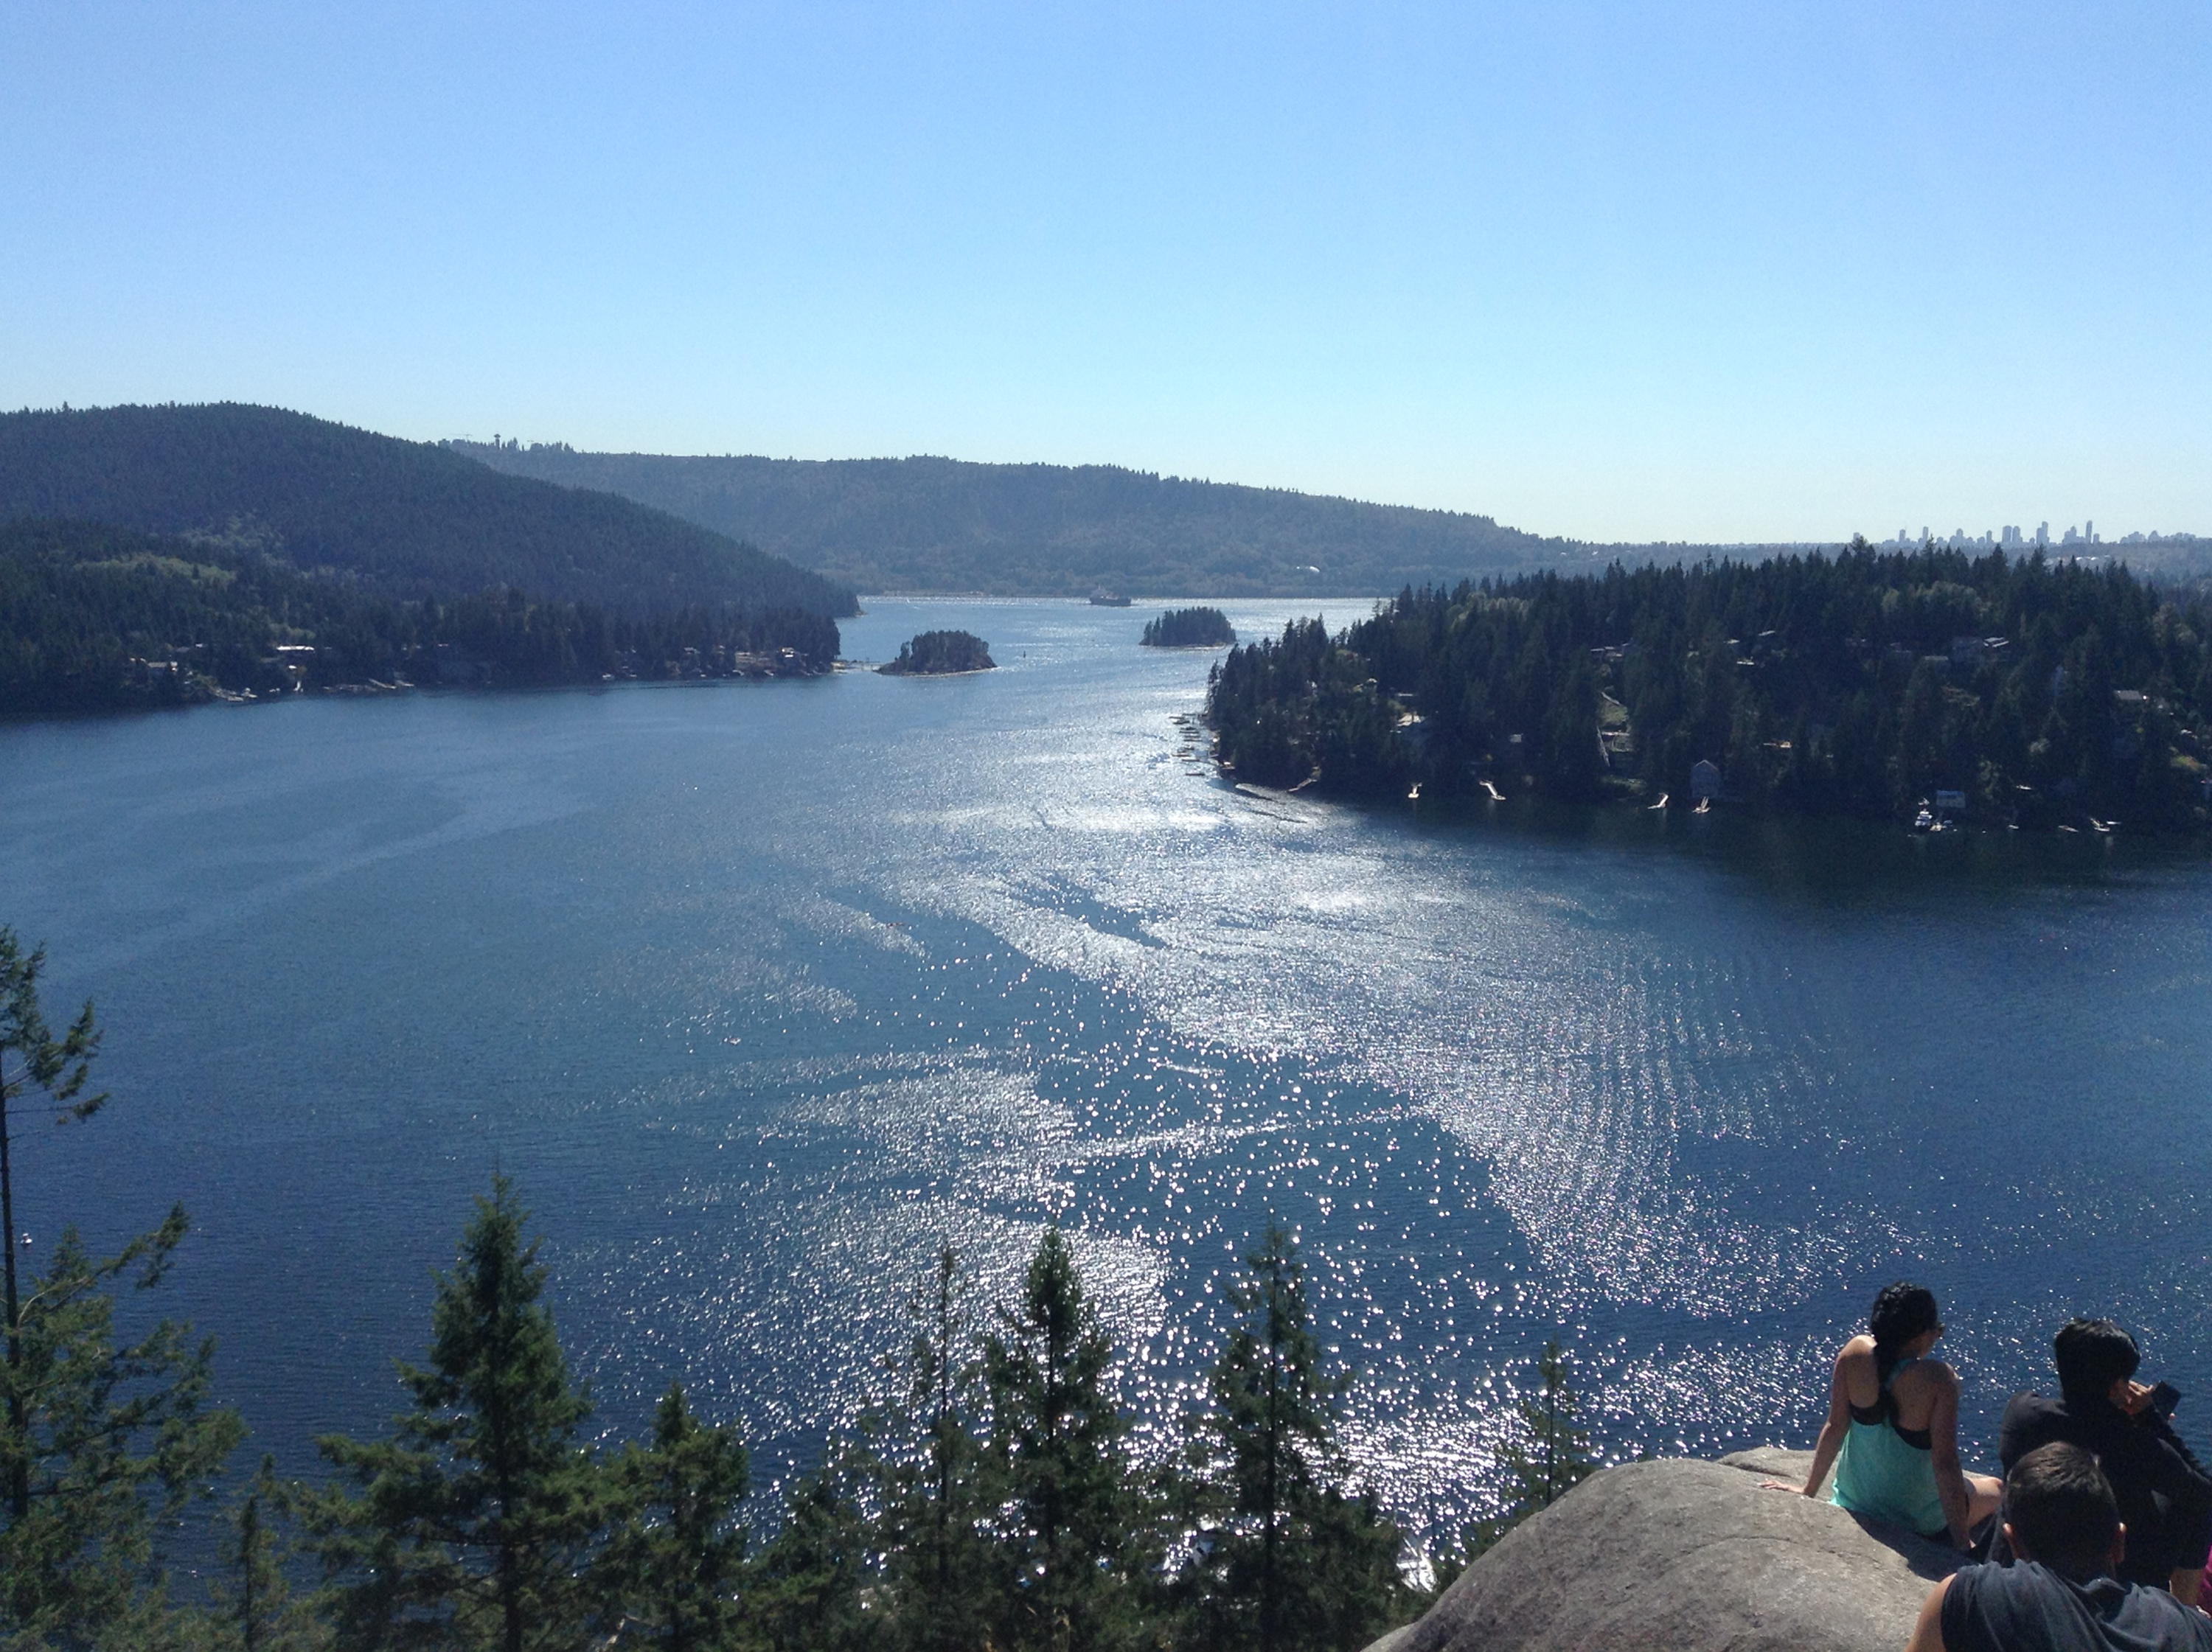 Taking in the view at the top of Deep Cove